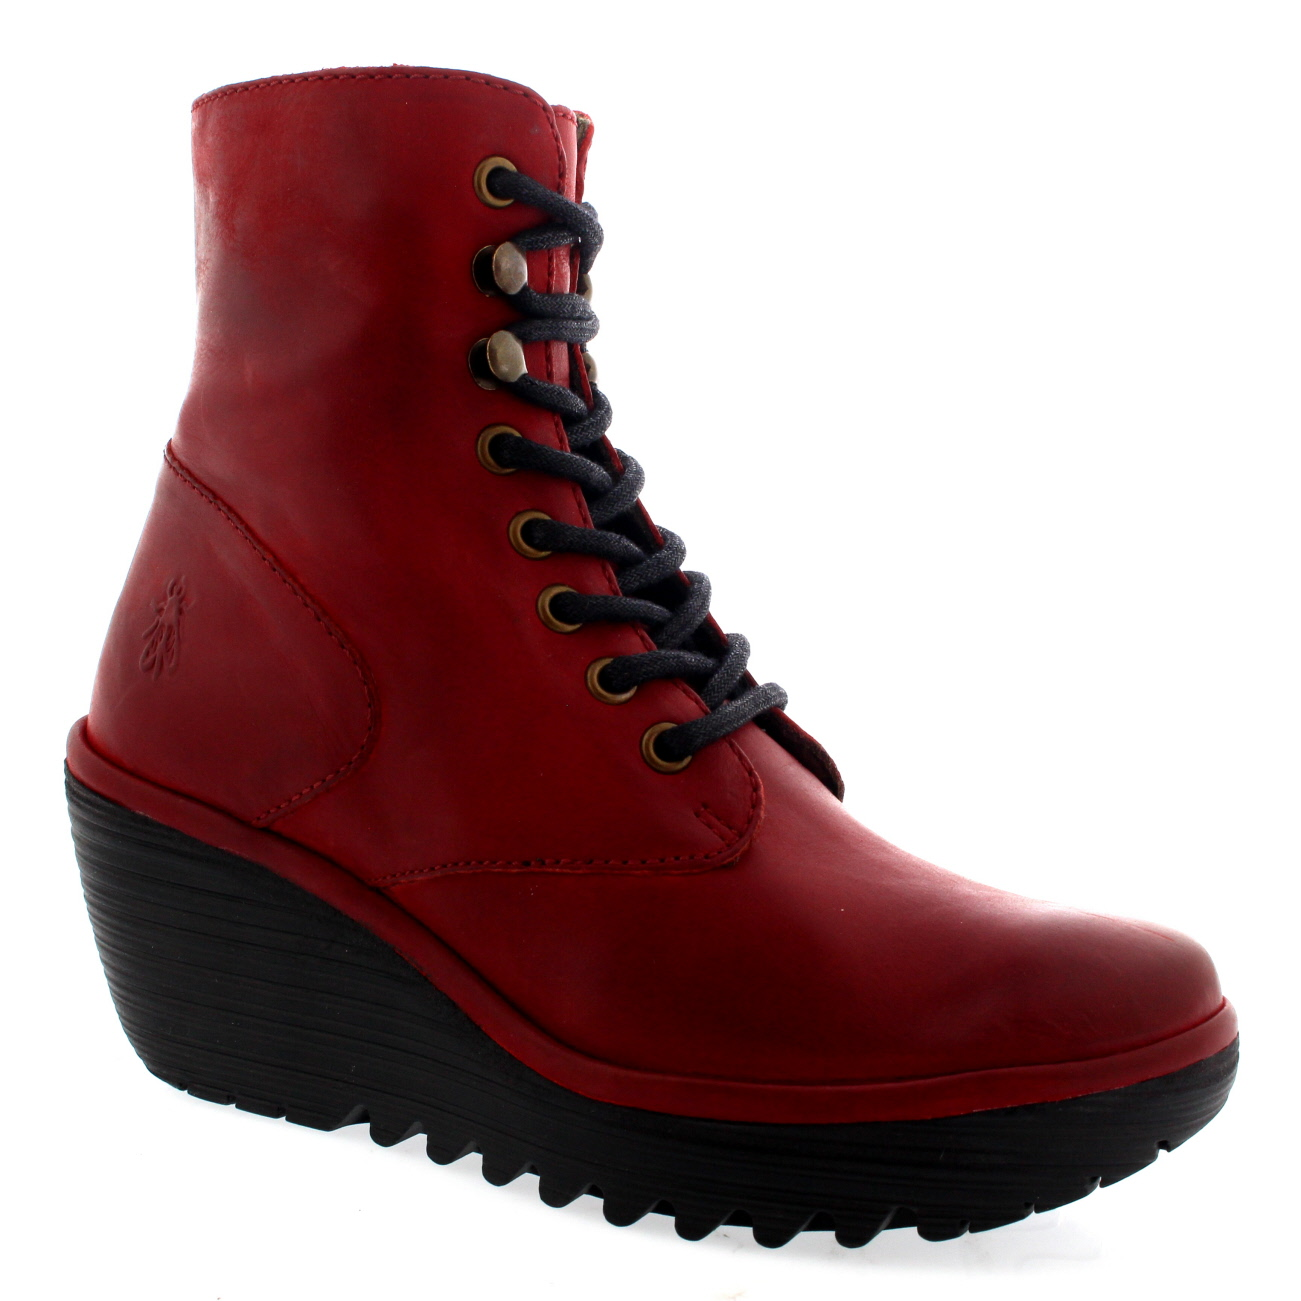 Womens Fly London Ygot Nevada Leather Wedge Heels Lace Up Ankle ...